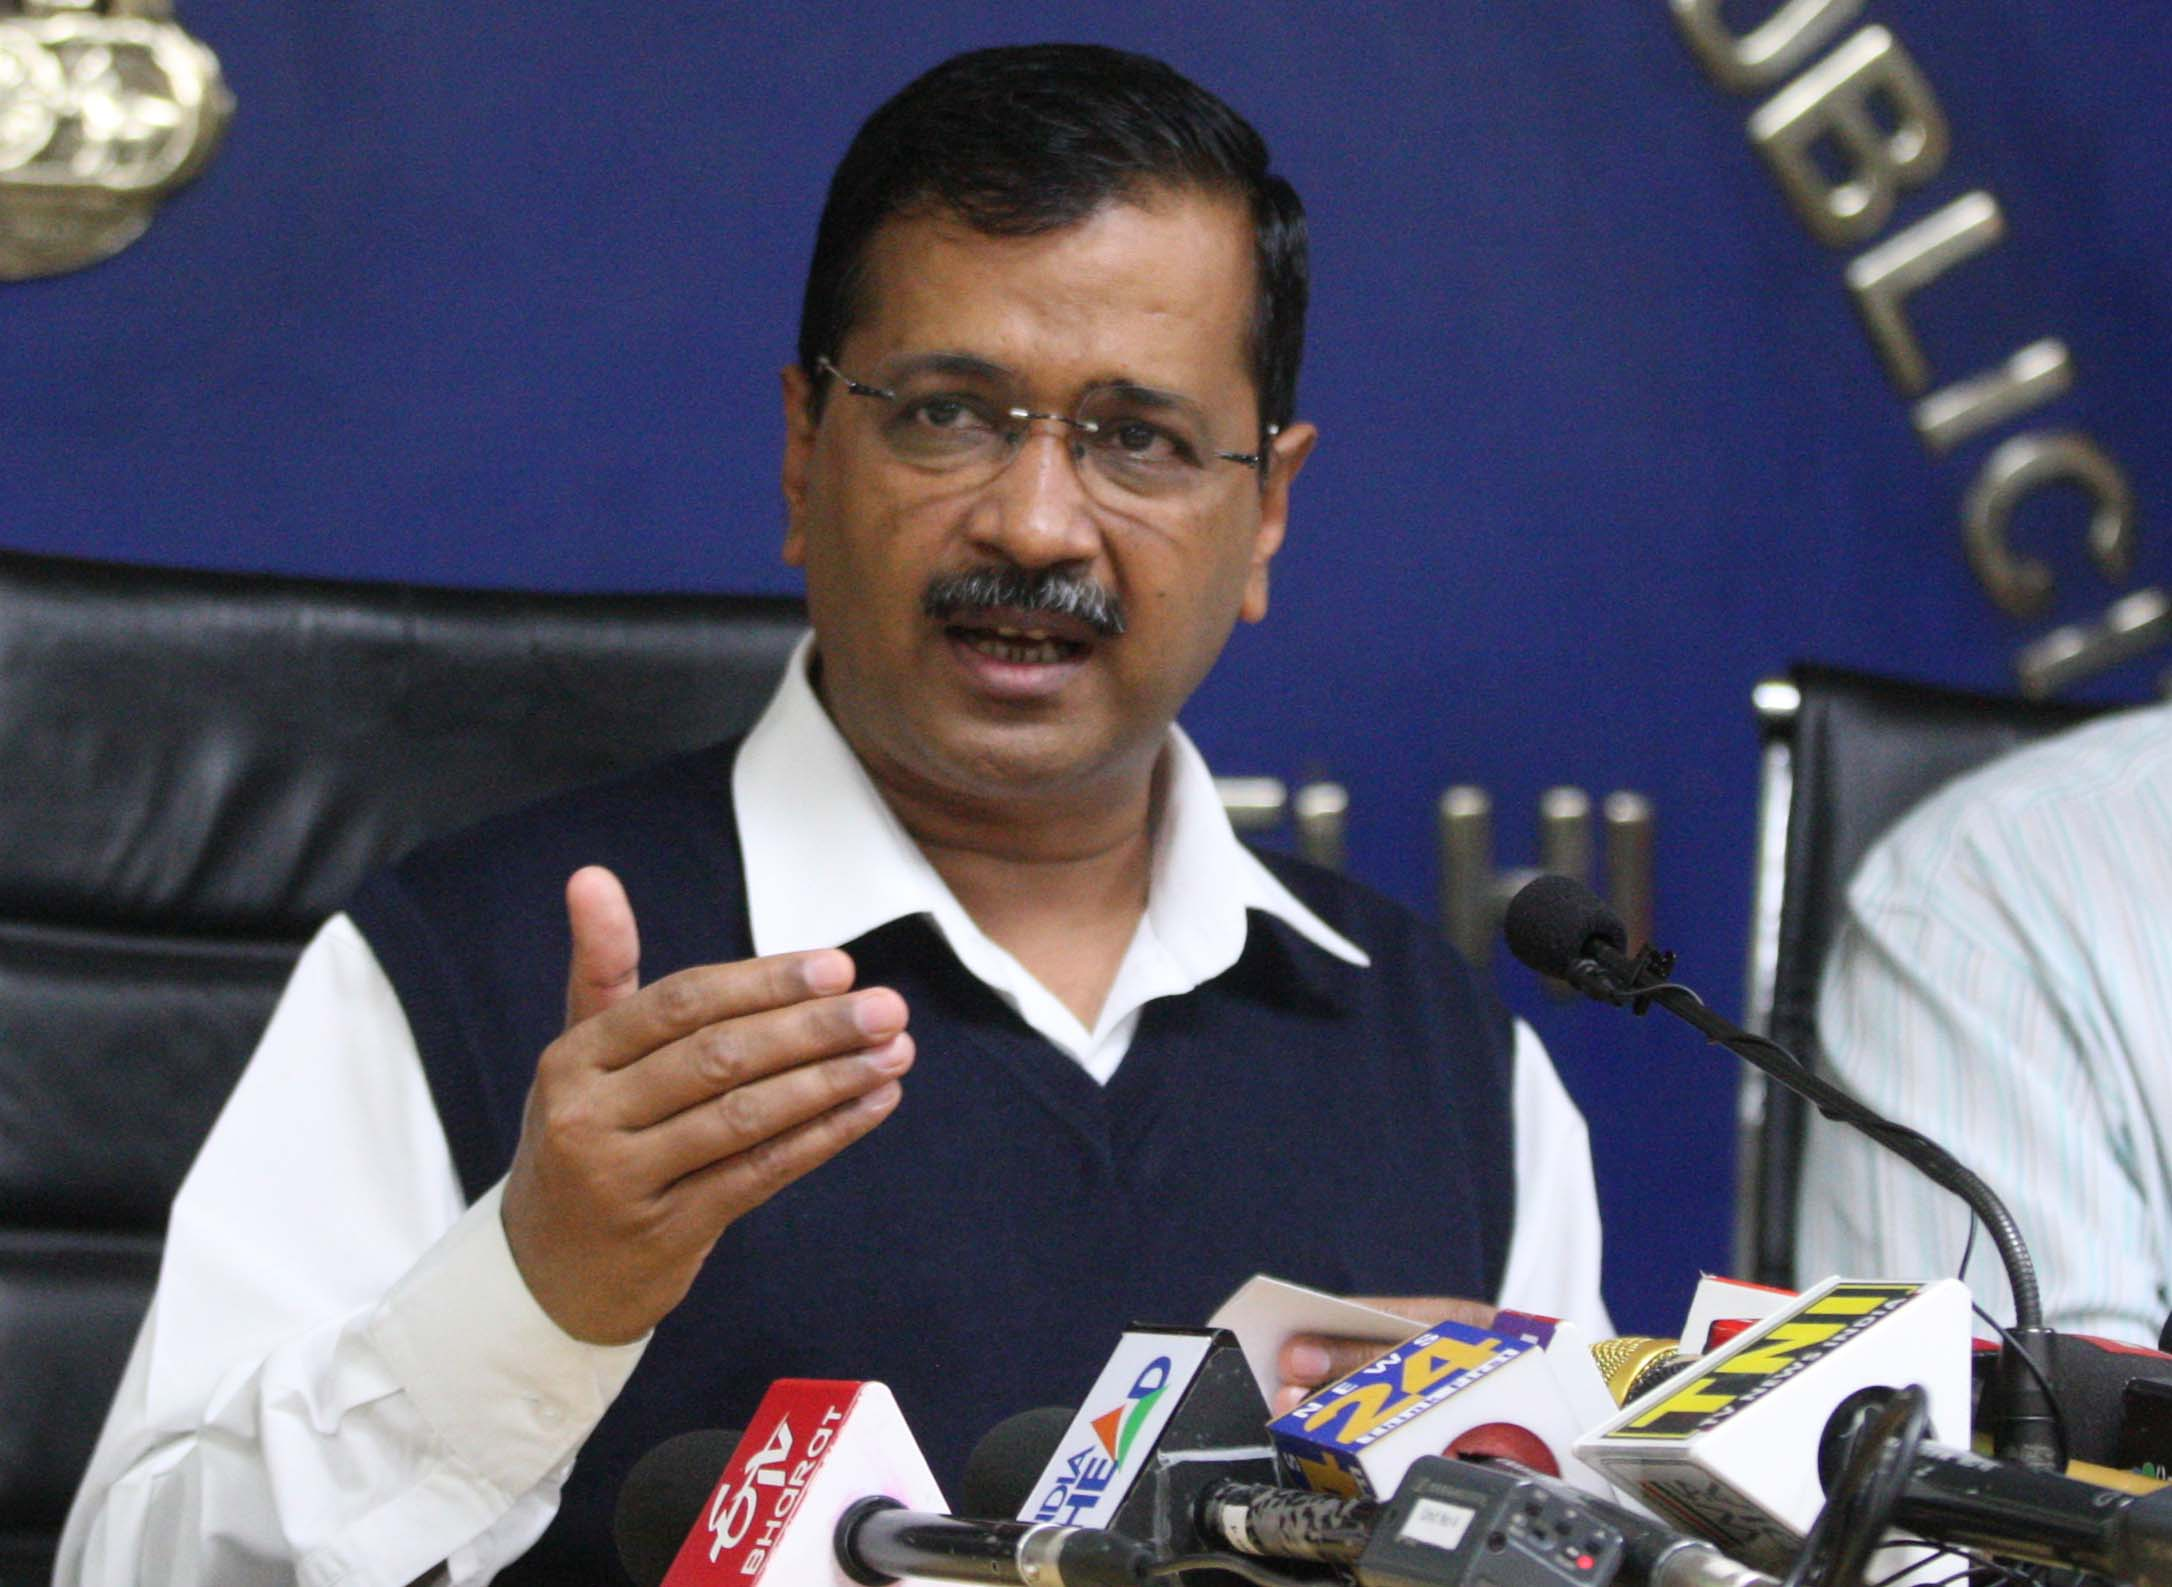 Chief Minister of Delhi Arvind Kejriwal addresses a press conference in New Delhi, India, on March 16.